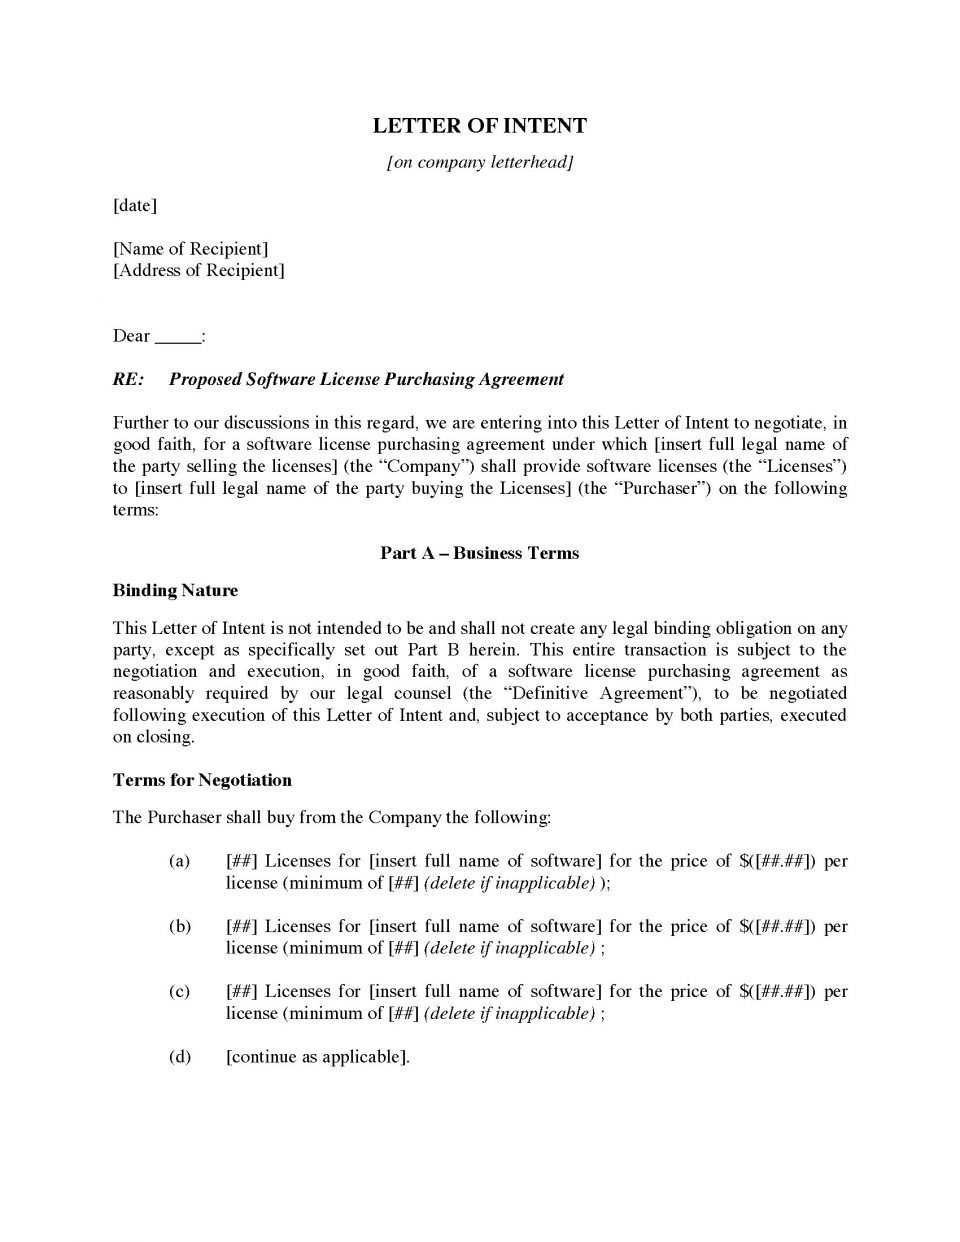 Is A Letter Of Intent Binding In Canada